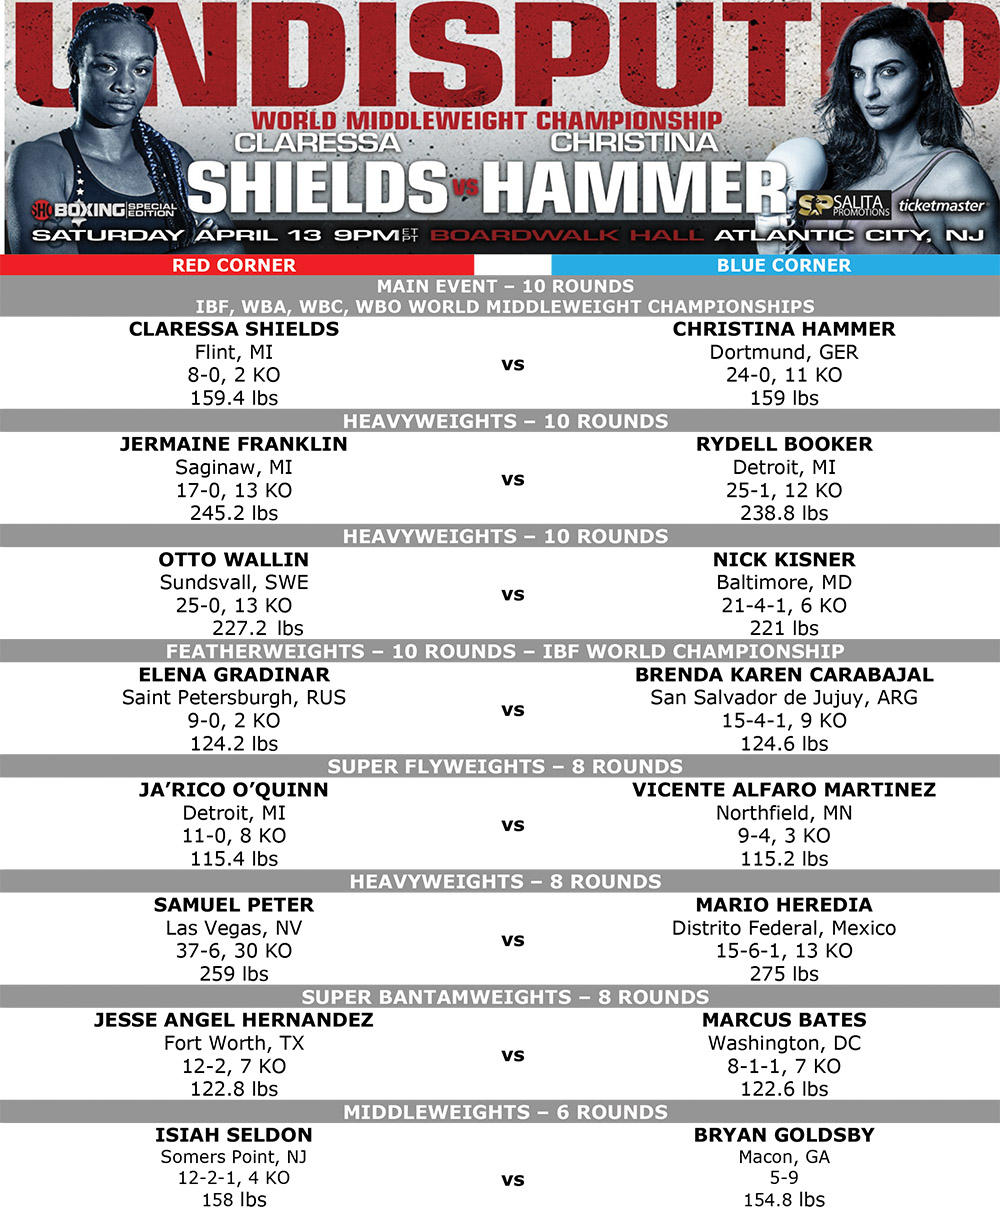 shields hammer bout sheet full - Claressa Shields-Christina Hammer weigh-in results and photo gallery